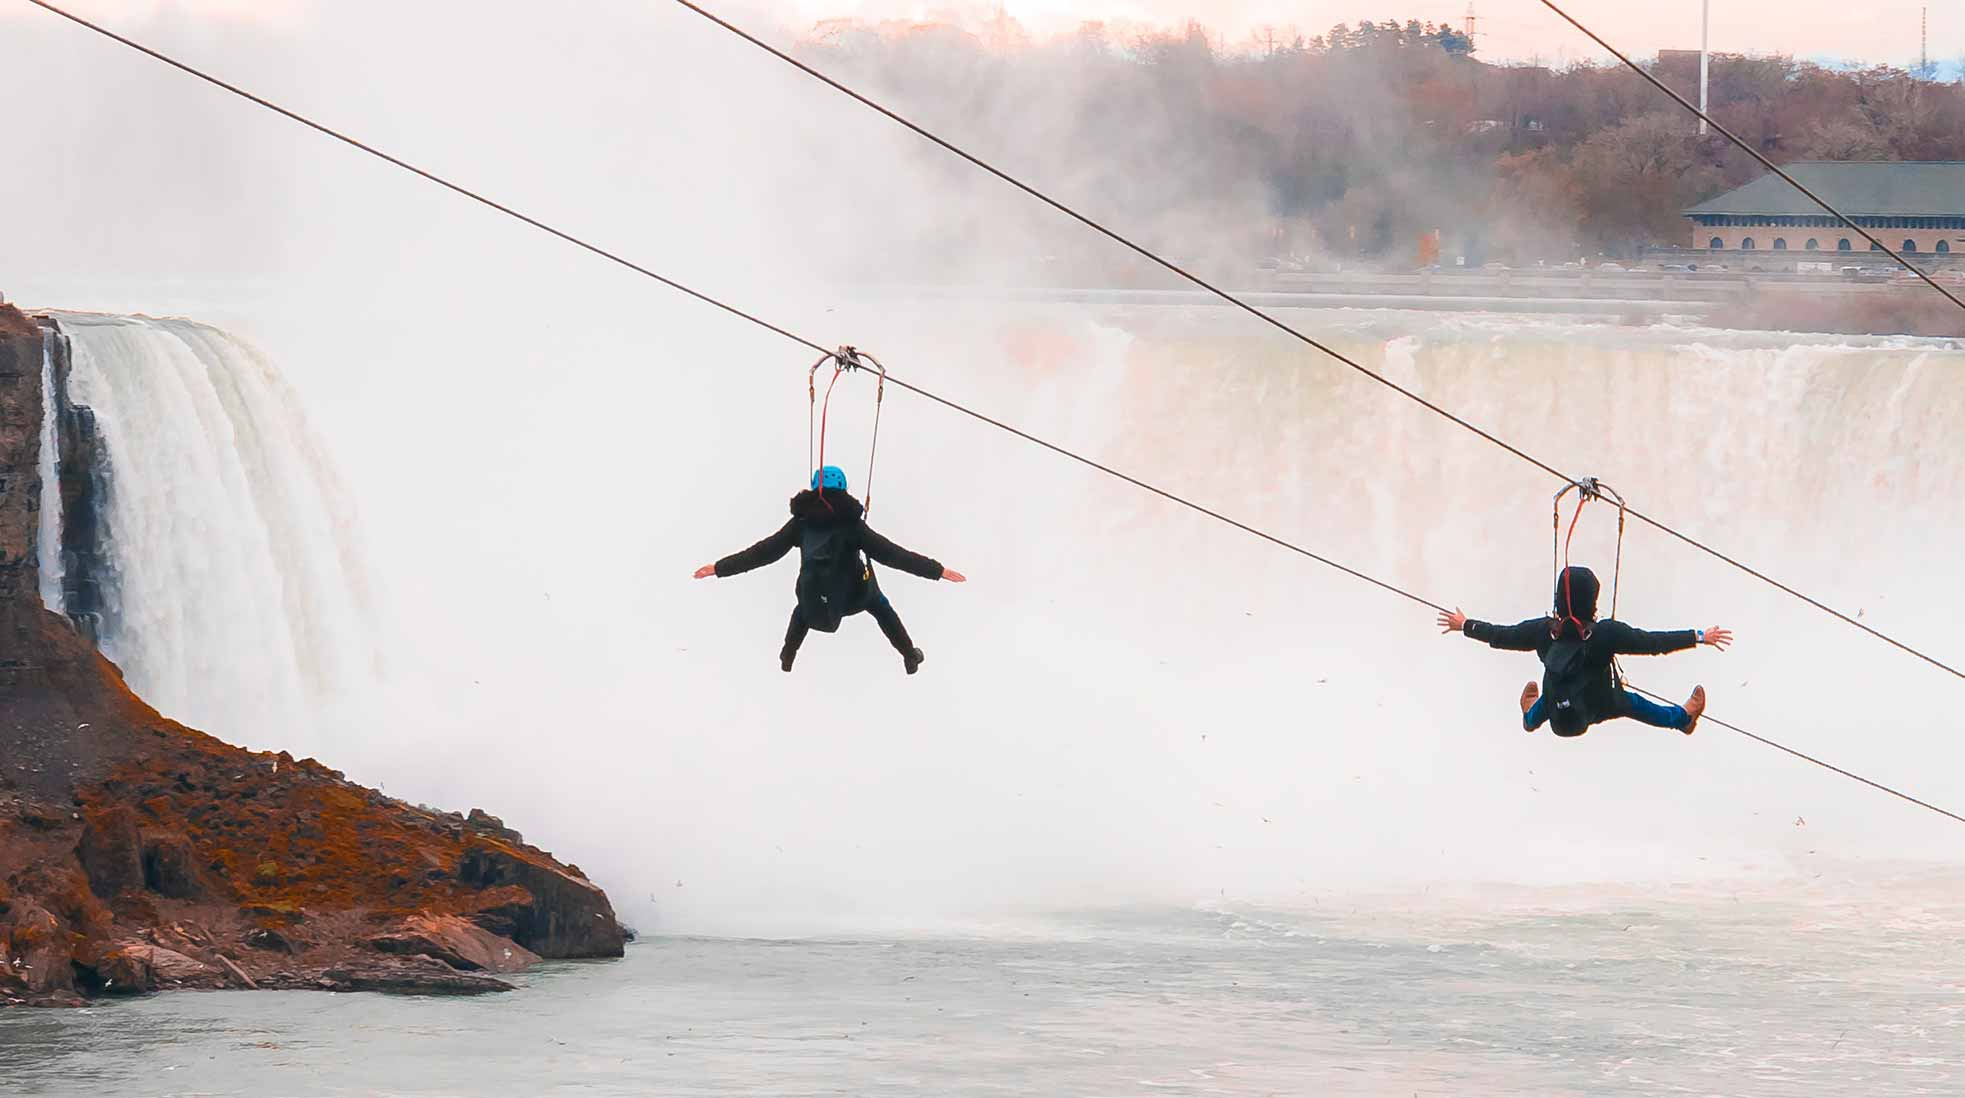 Two people riding a zipline over water towards a waterfall